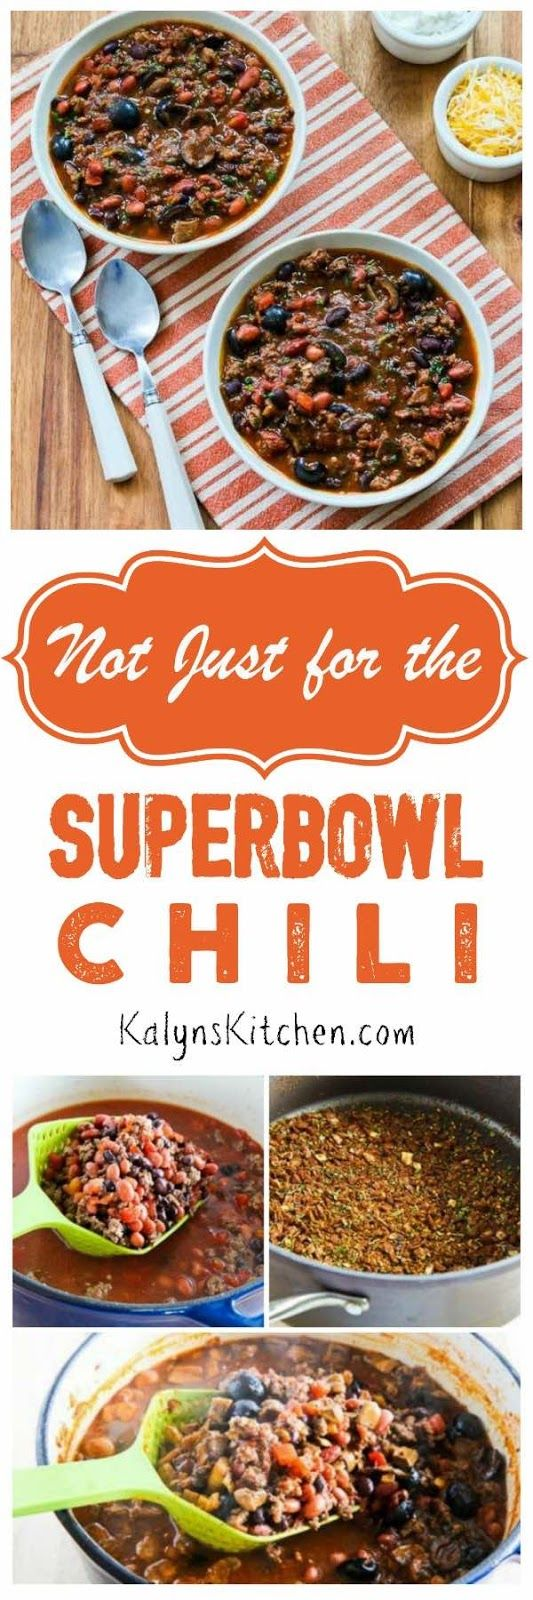 Not Just for the Superbowl Chili with Sausage, Mushrooms, and Olives is perfect for the Superbowl but this chili is too good to make only once a year!  [found on KalynsKitchen.com]